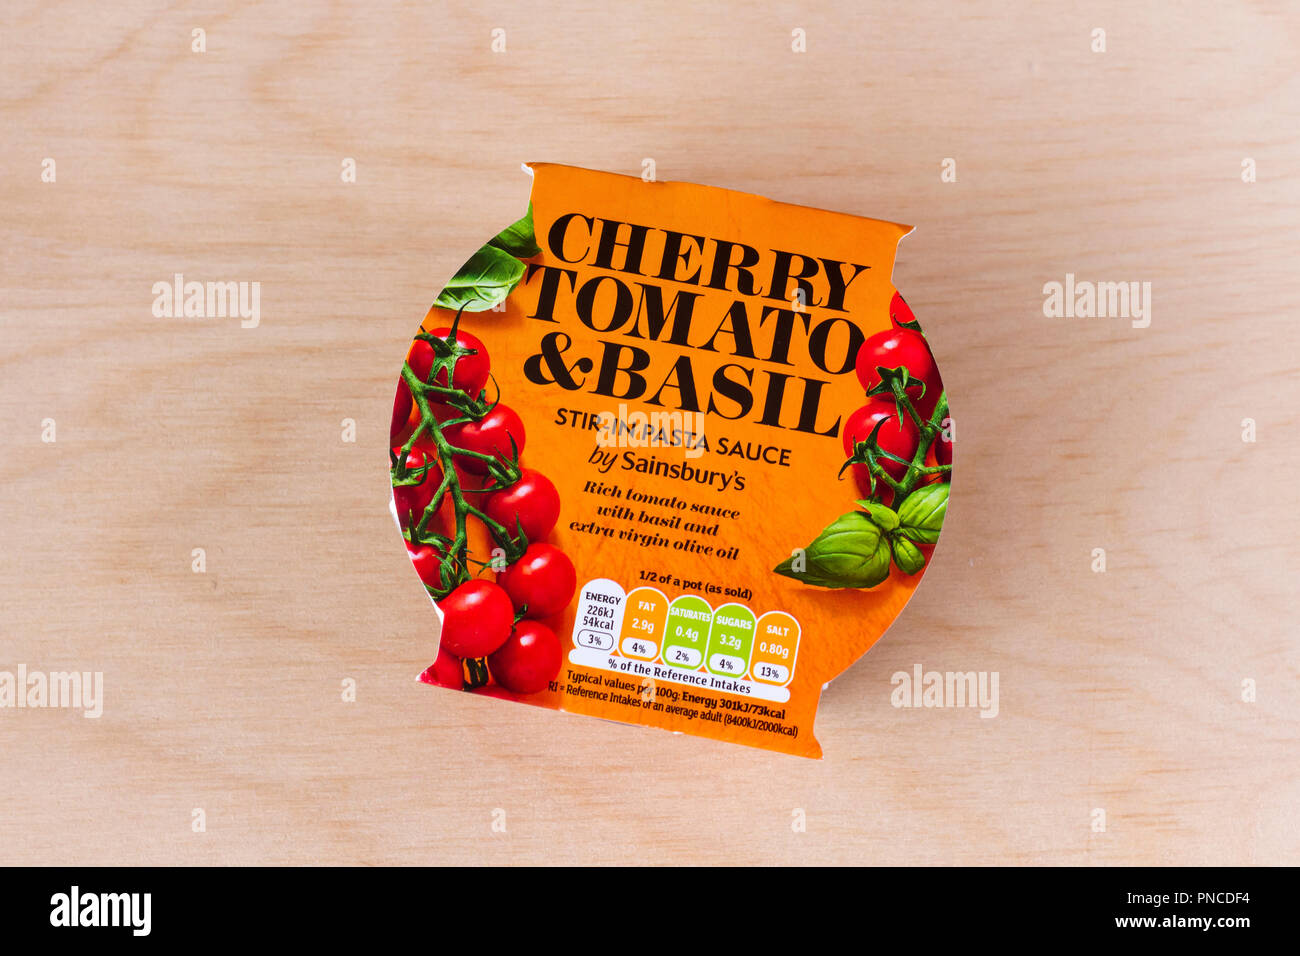 Cherry Tomato Basil Stir In Pasta Sauce By Sainsburys England United Kingdom Stock Photo Alamy